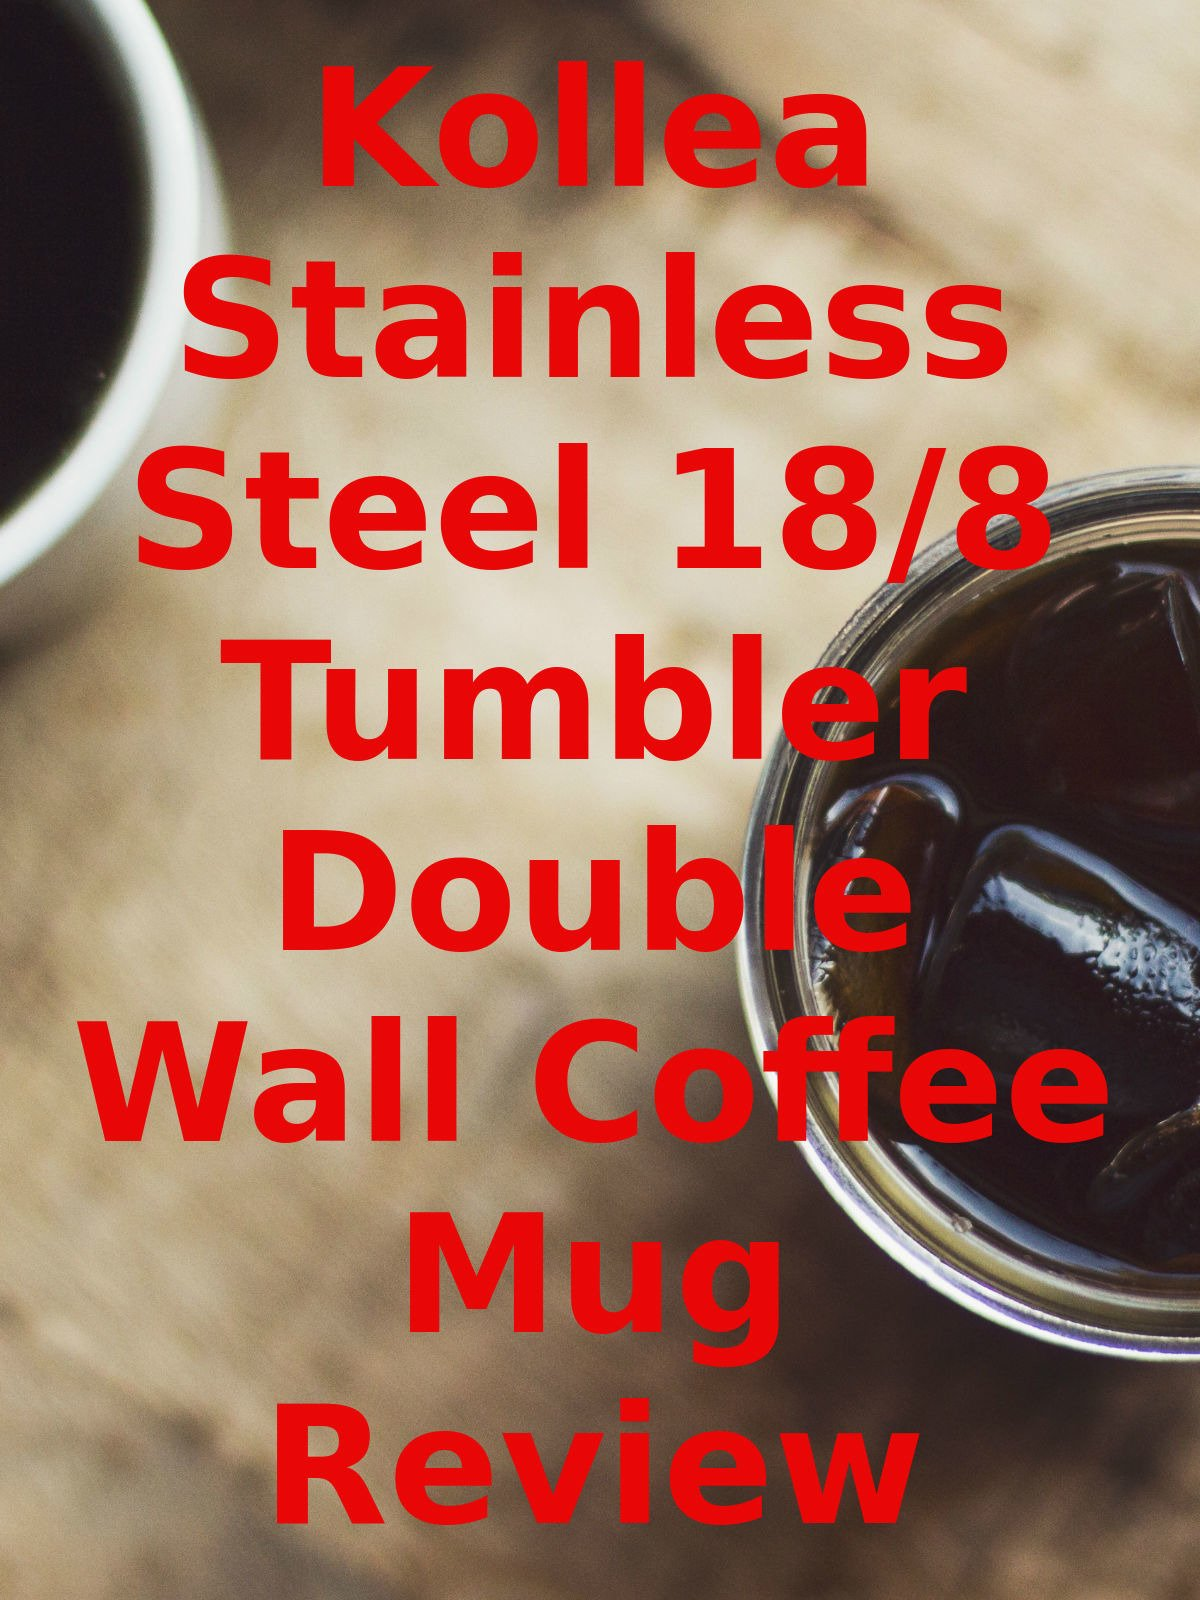 Review: Kollea Stainless Steel 18/8 Tumbler Double Wall Coffee Mug Review on Amazon Prime Video UK